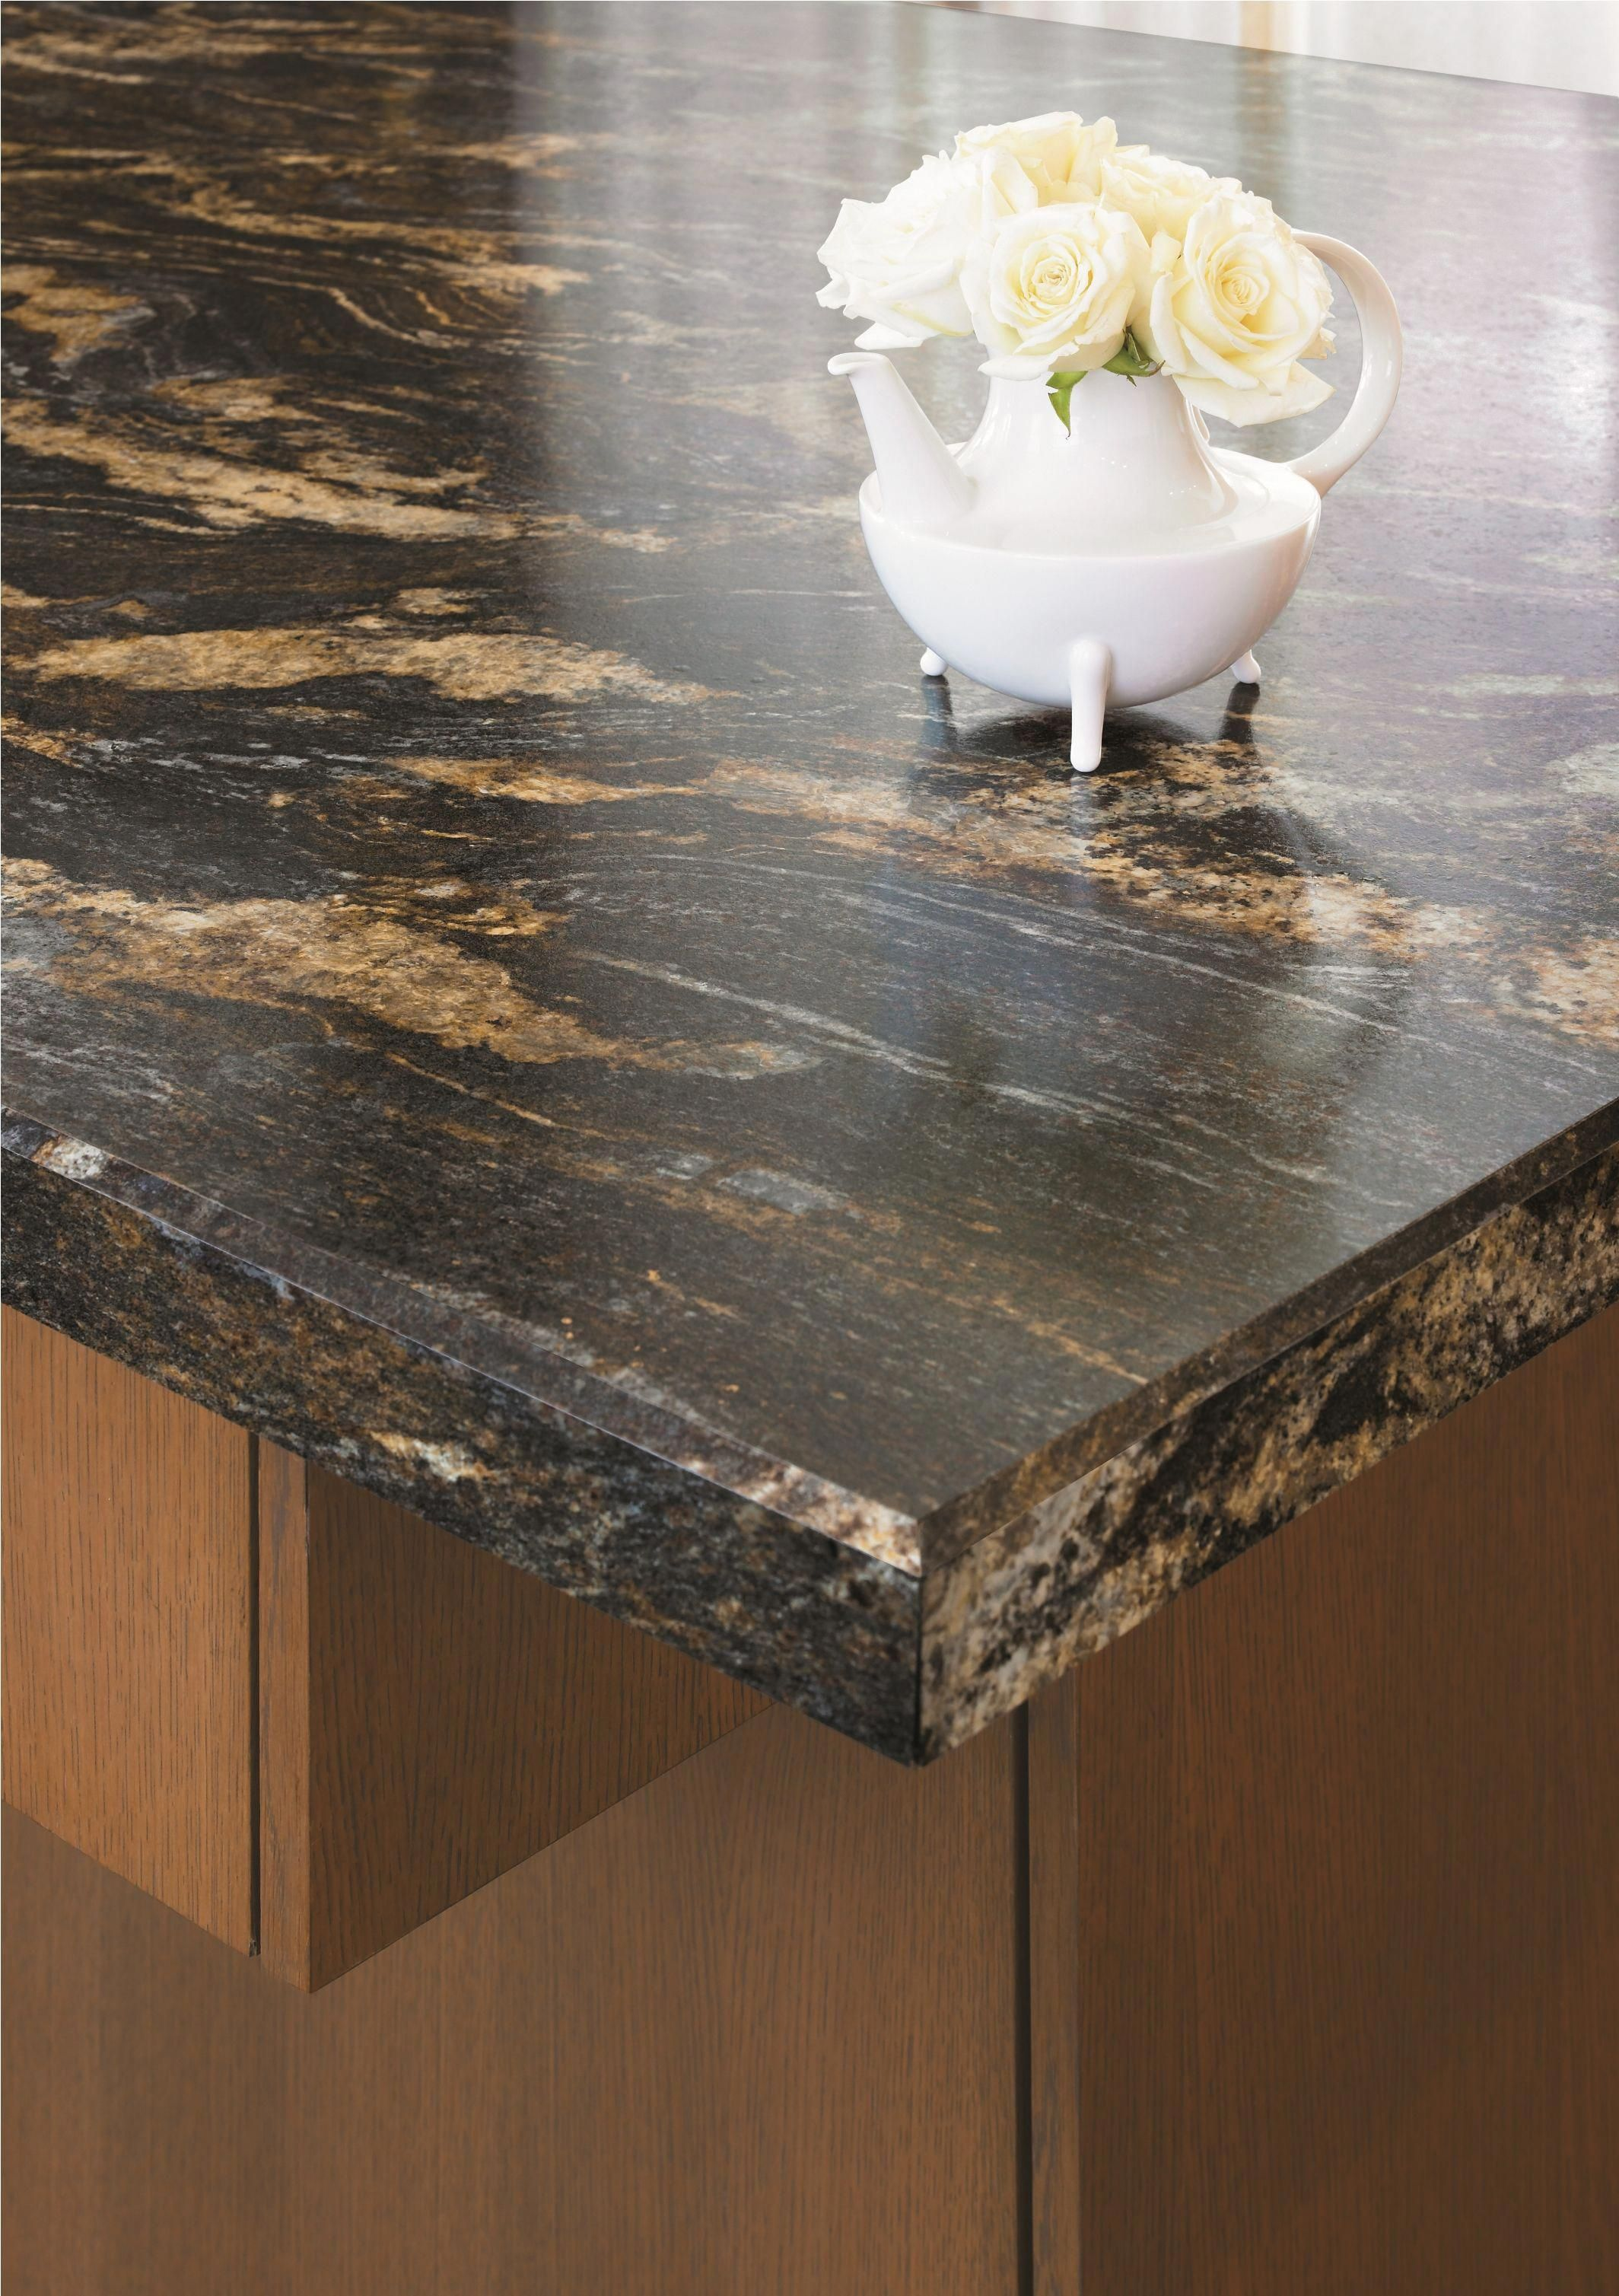 Wow Are You Telling Me That Is Laminate You Bet It Is Follow The Blog To Revamp Your Kitchen On A Budget Wit Countertops Formica Countertops Marble Vinyl